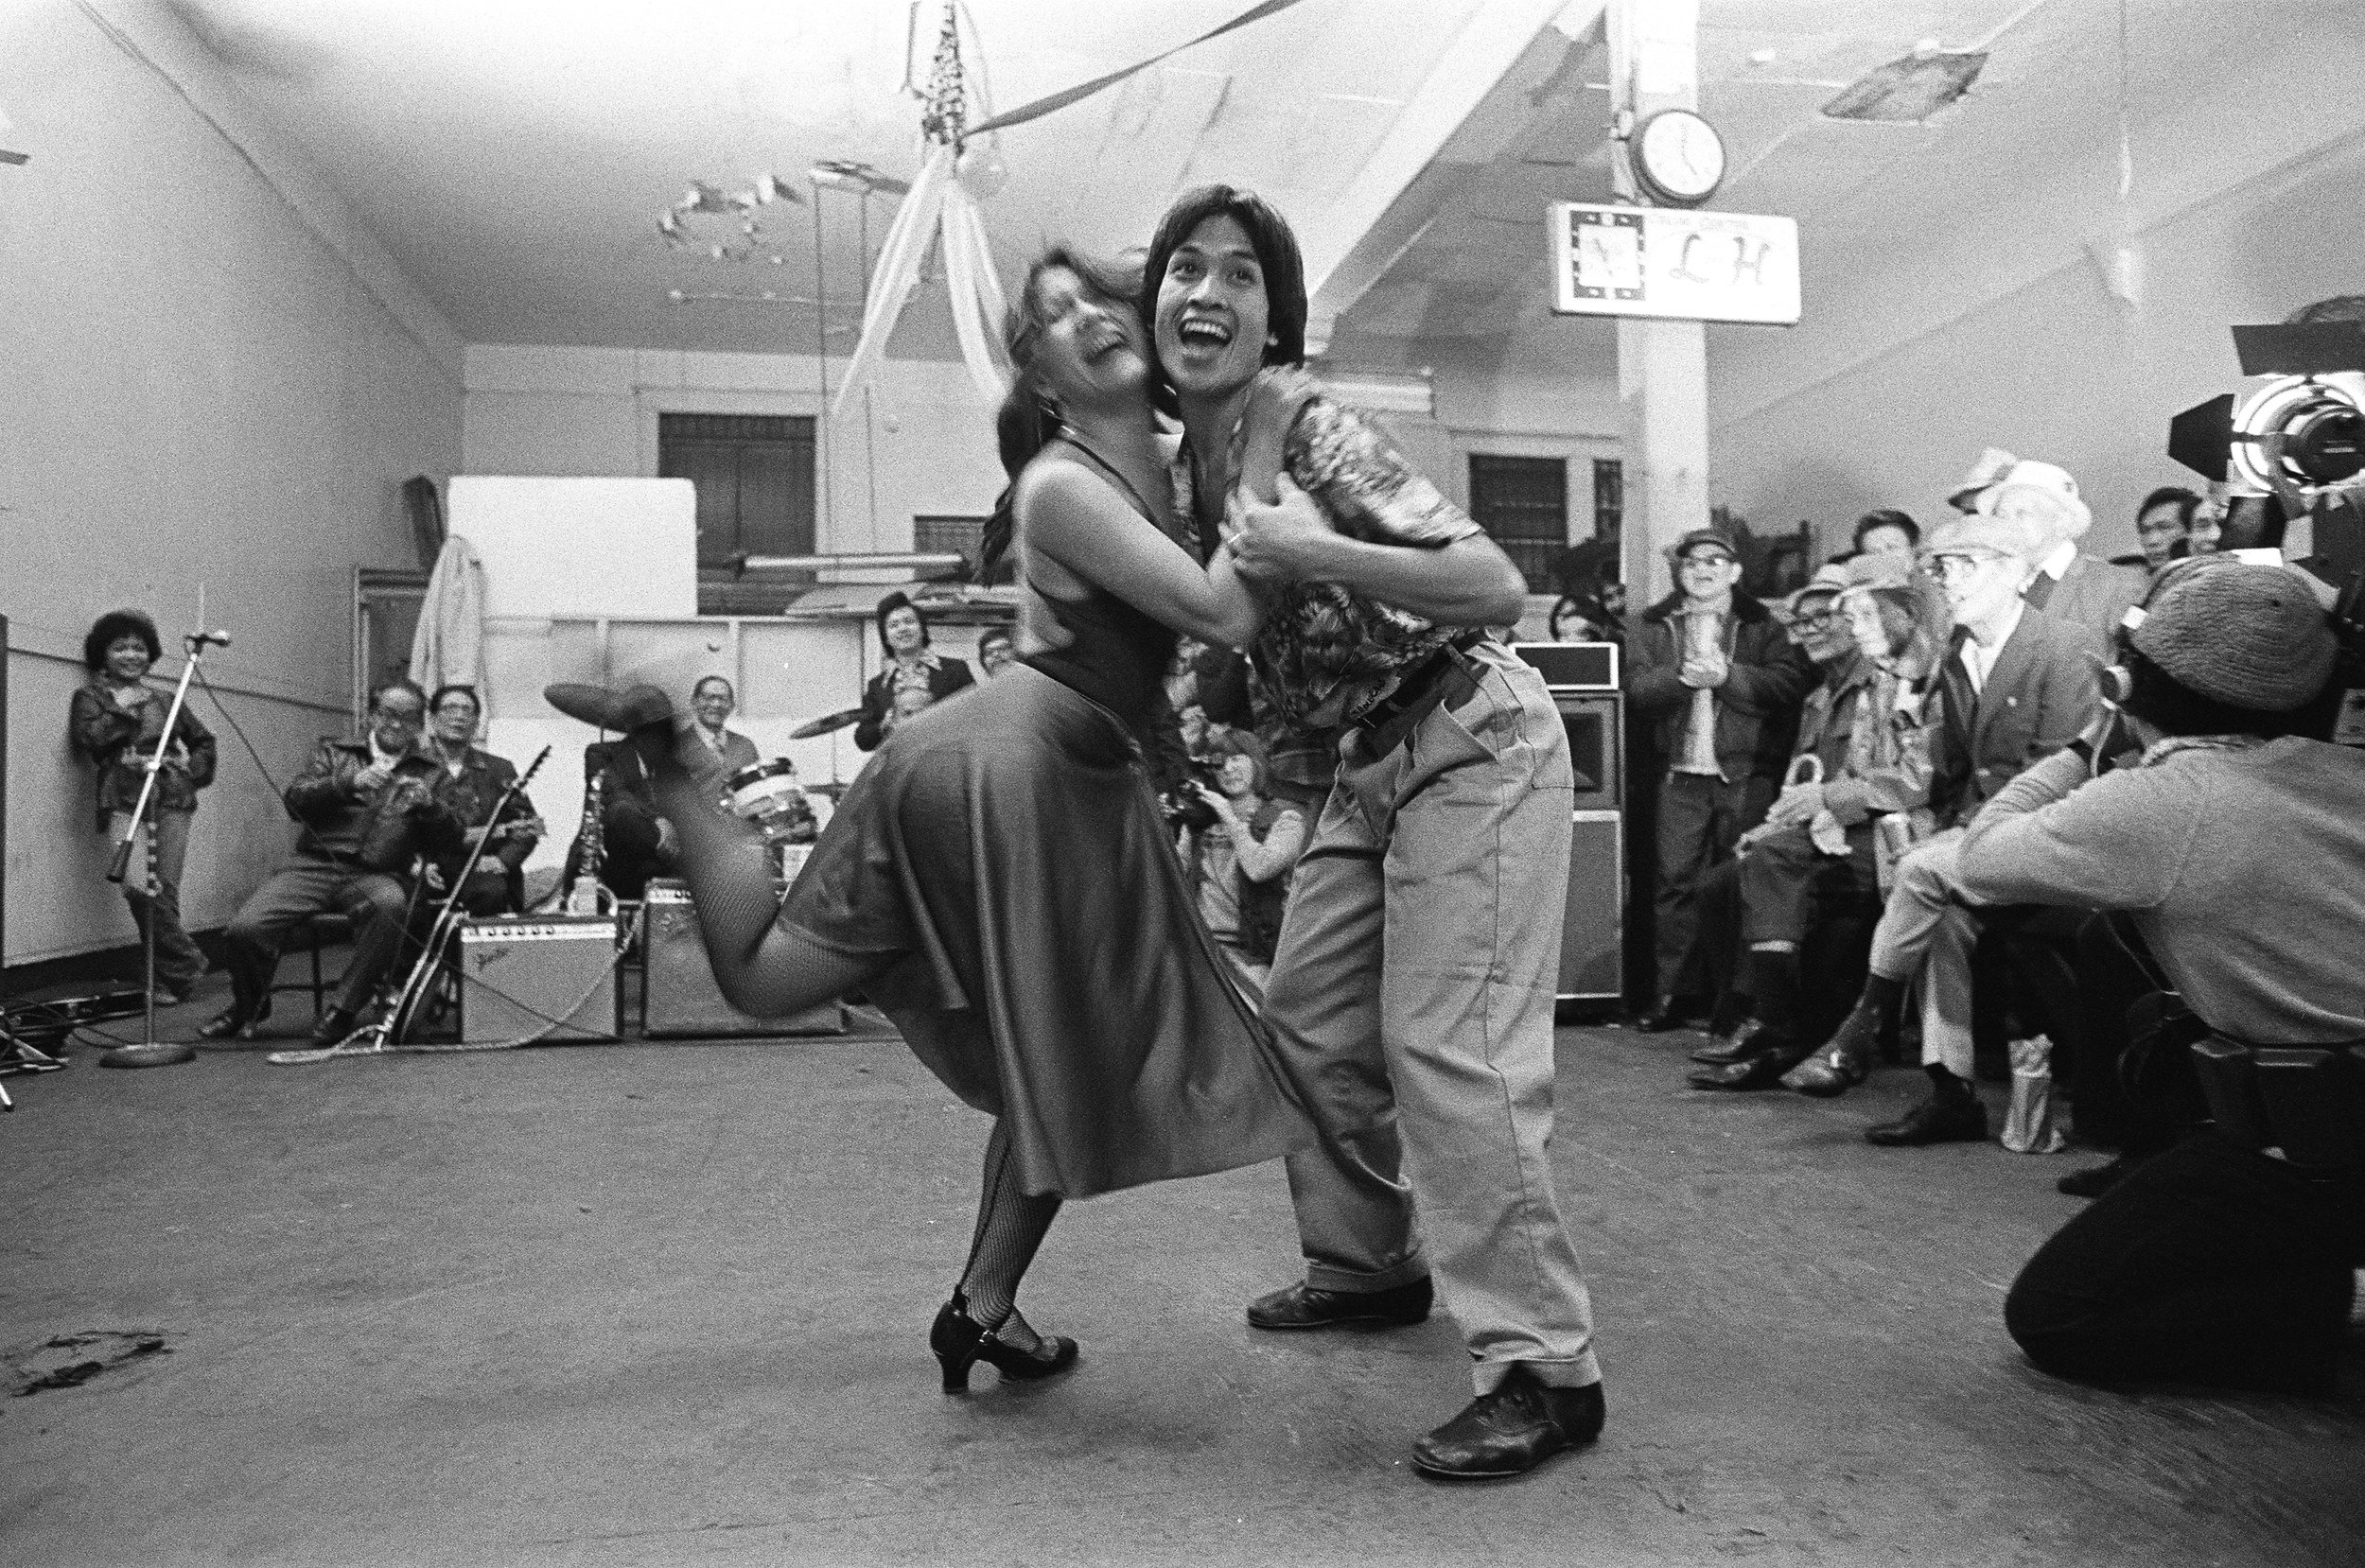 Evel Ante and Gregory R. De Silva dancing for I-Hotel residents in Lucky's Pool Hall on Kearny Street, c. 1970's